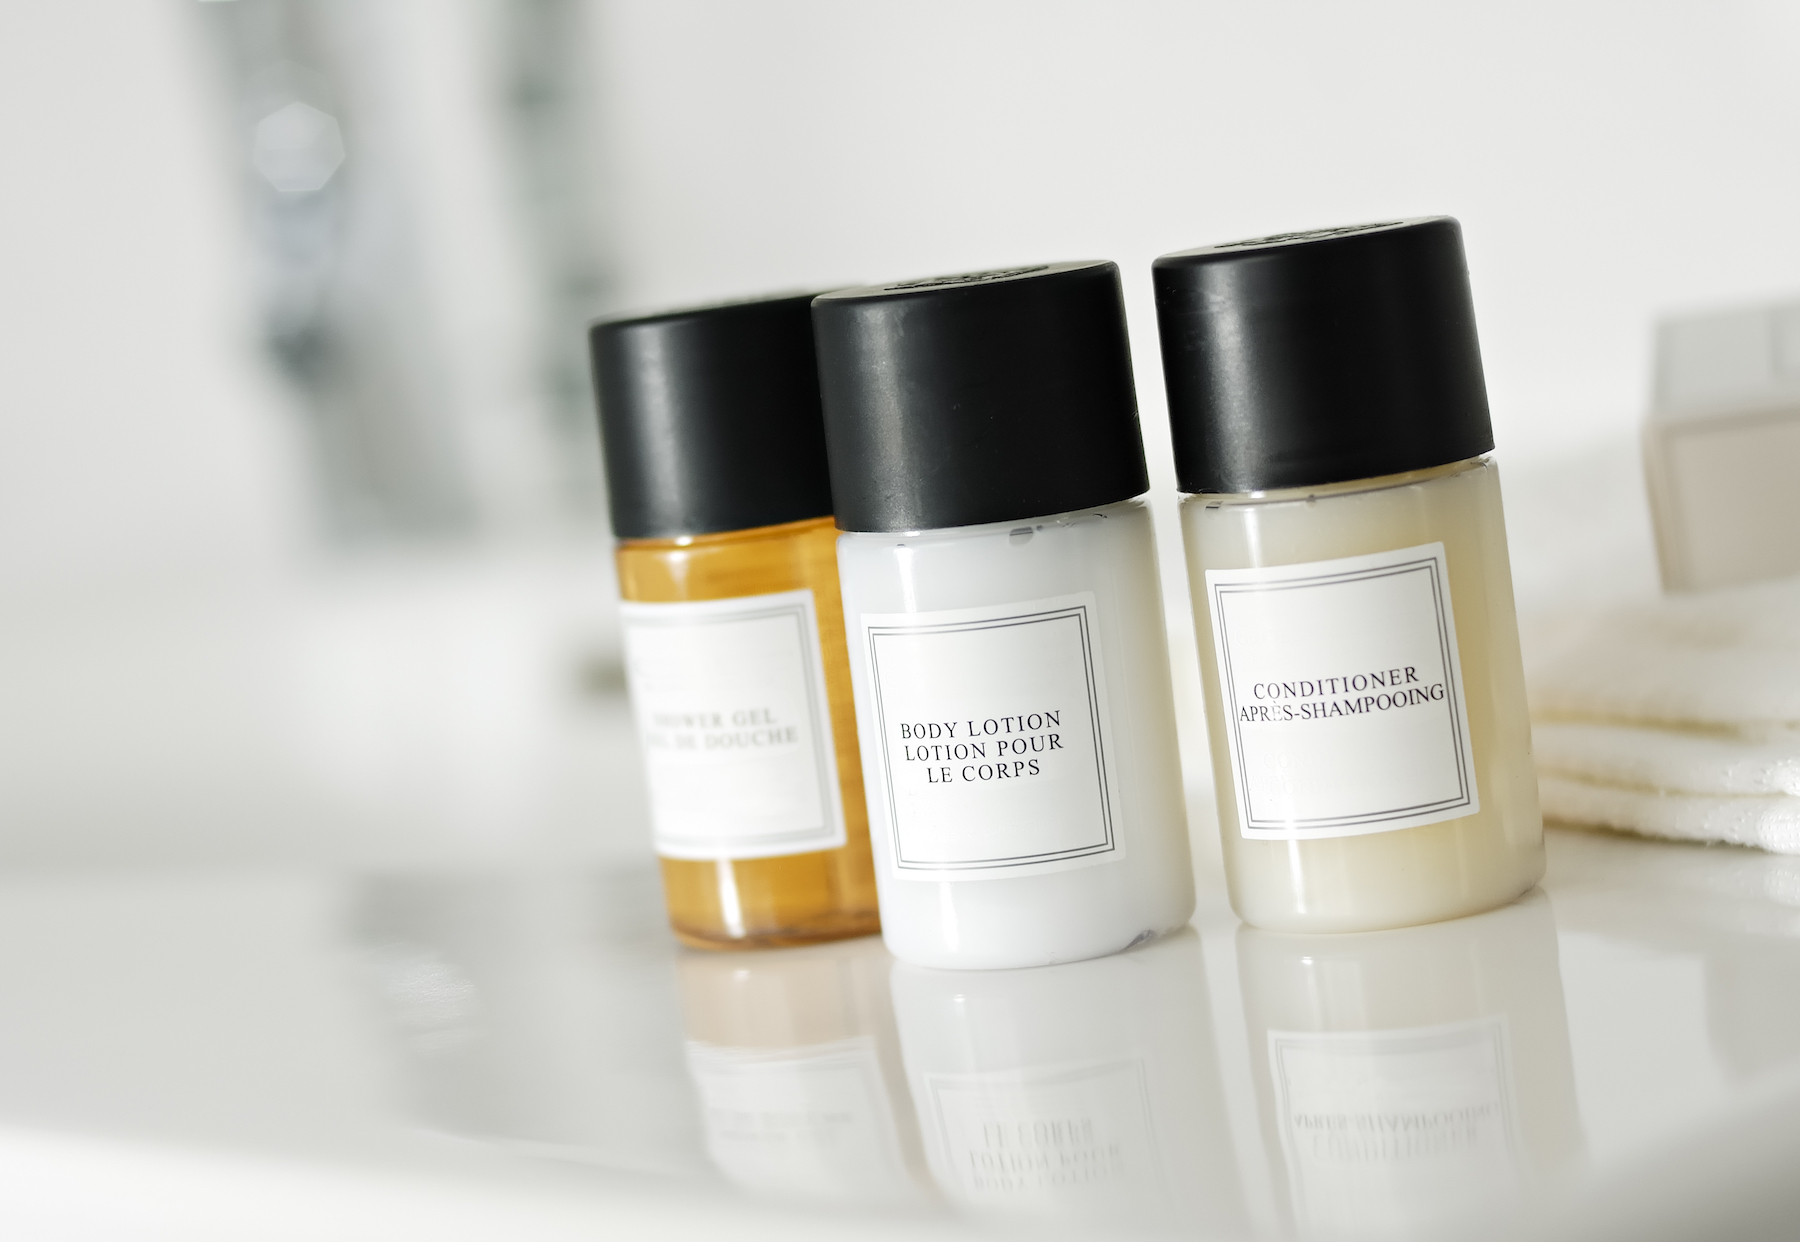 Free beauty samples of shampoo and conditioner from hotel